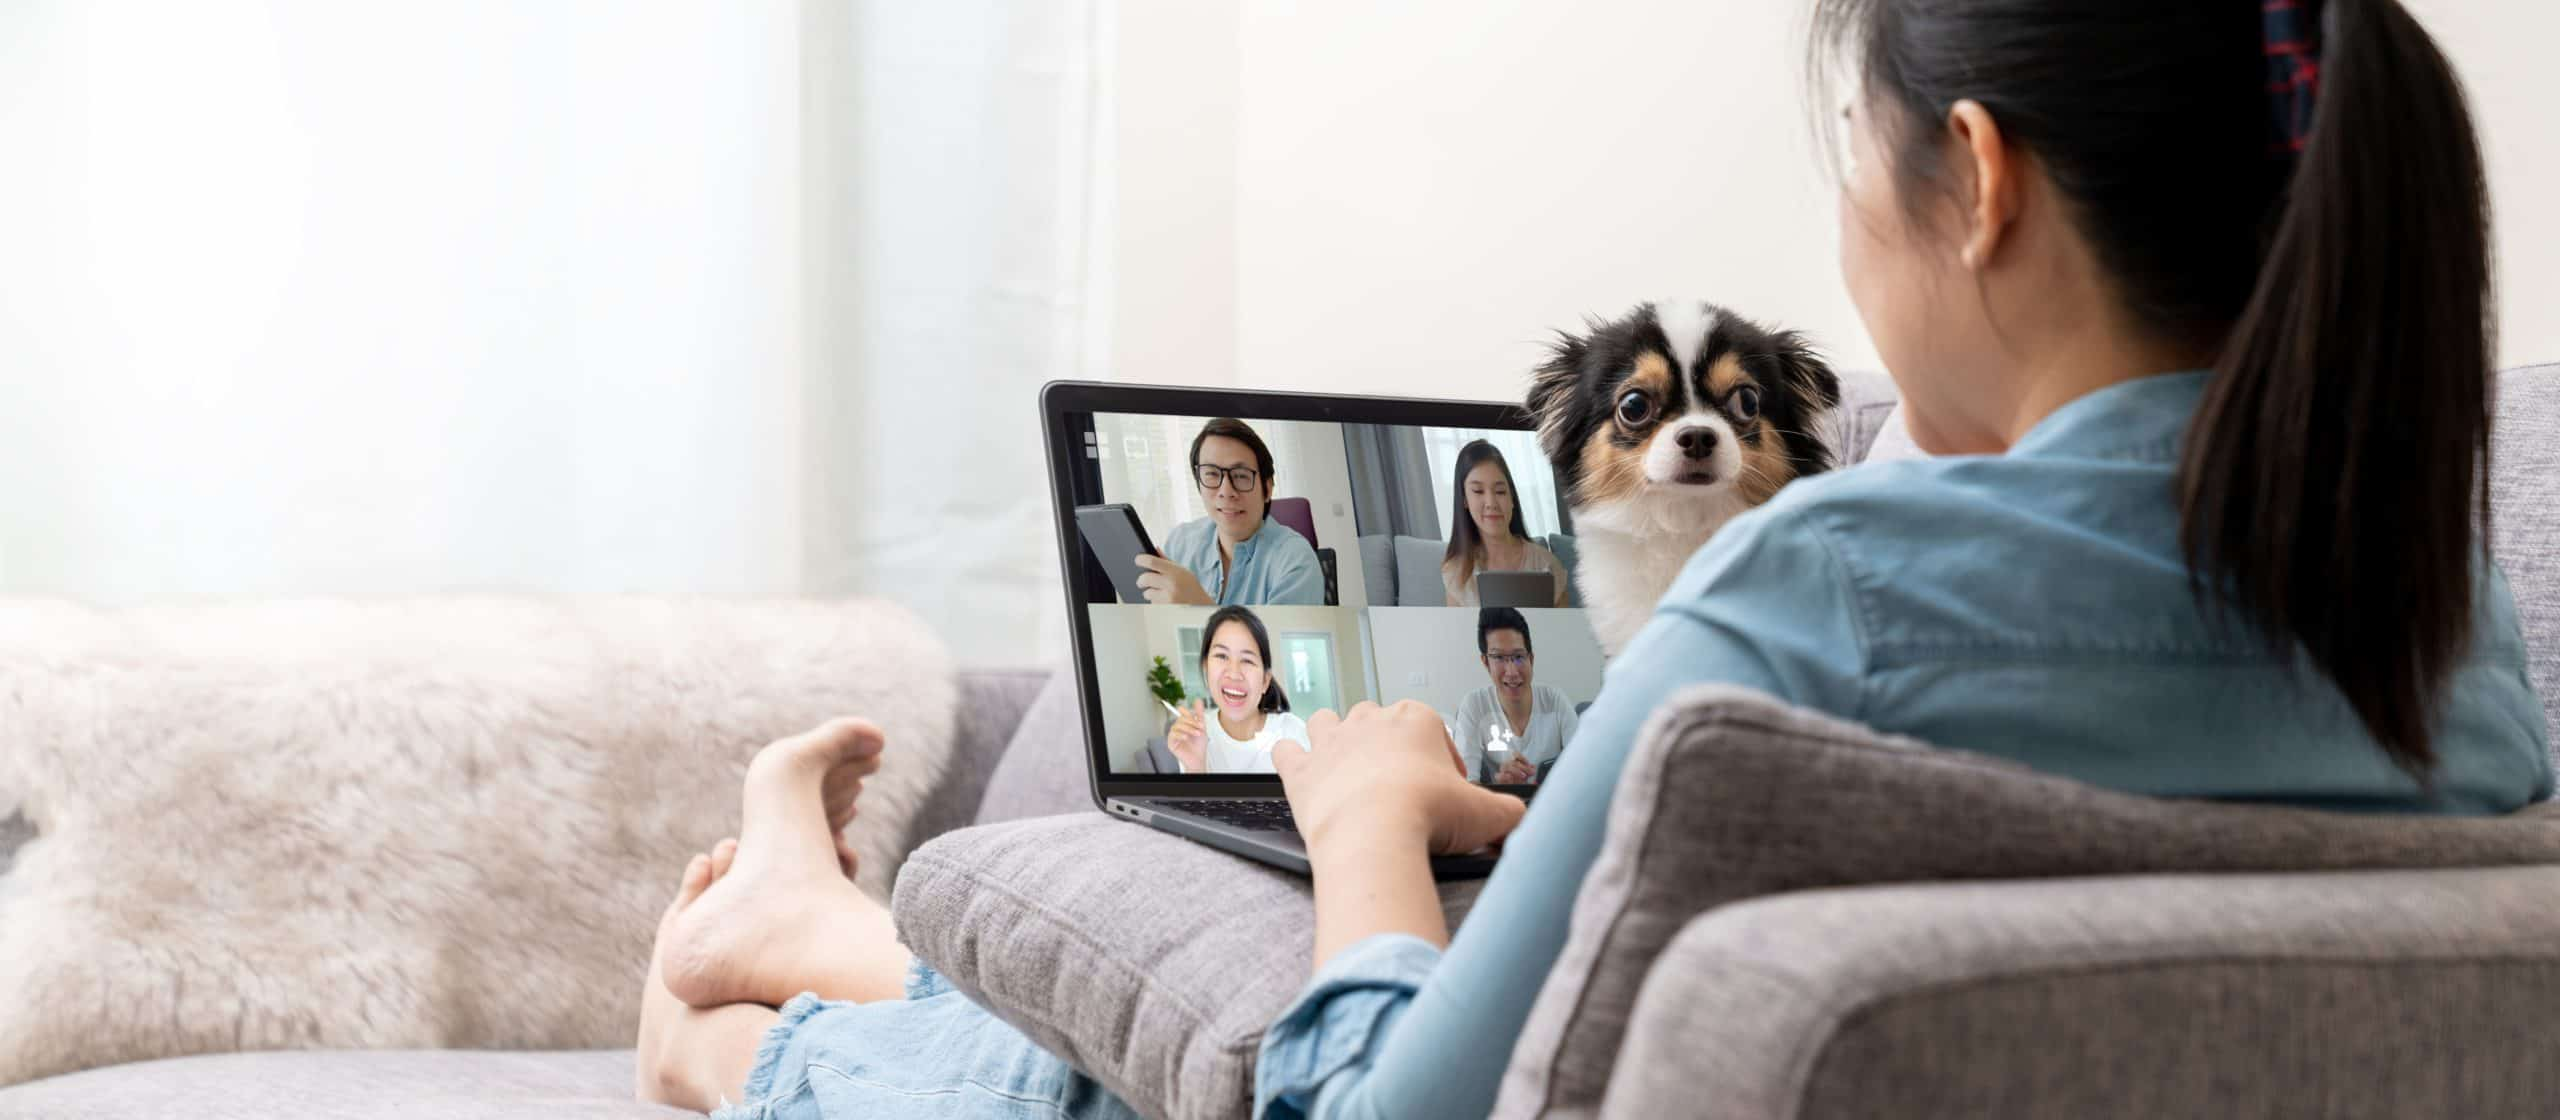 Woman working from home with a dog on her lap. When working from home with dogs, tire them out with exercise, use appropriate chew toys, and consider taking them to doggy daycare.